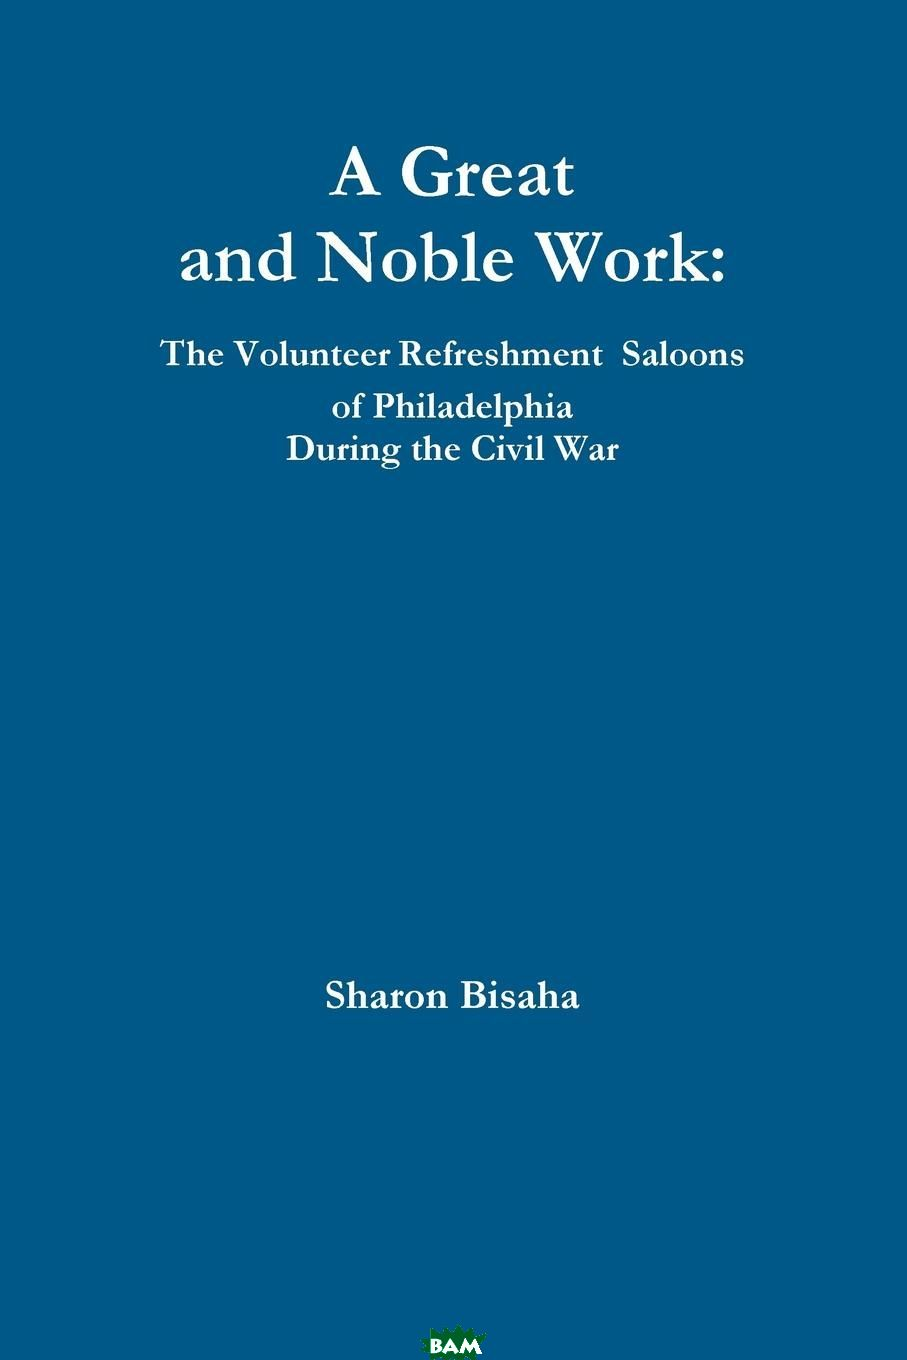 A Great and Noble Work. The Volunteer Refreshment Saloons of Philadelphia During the Civil War